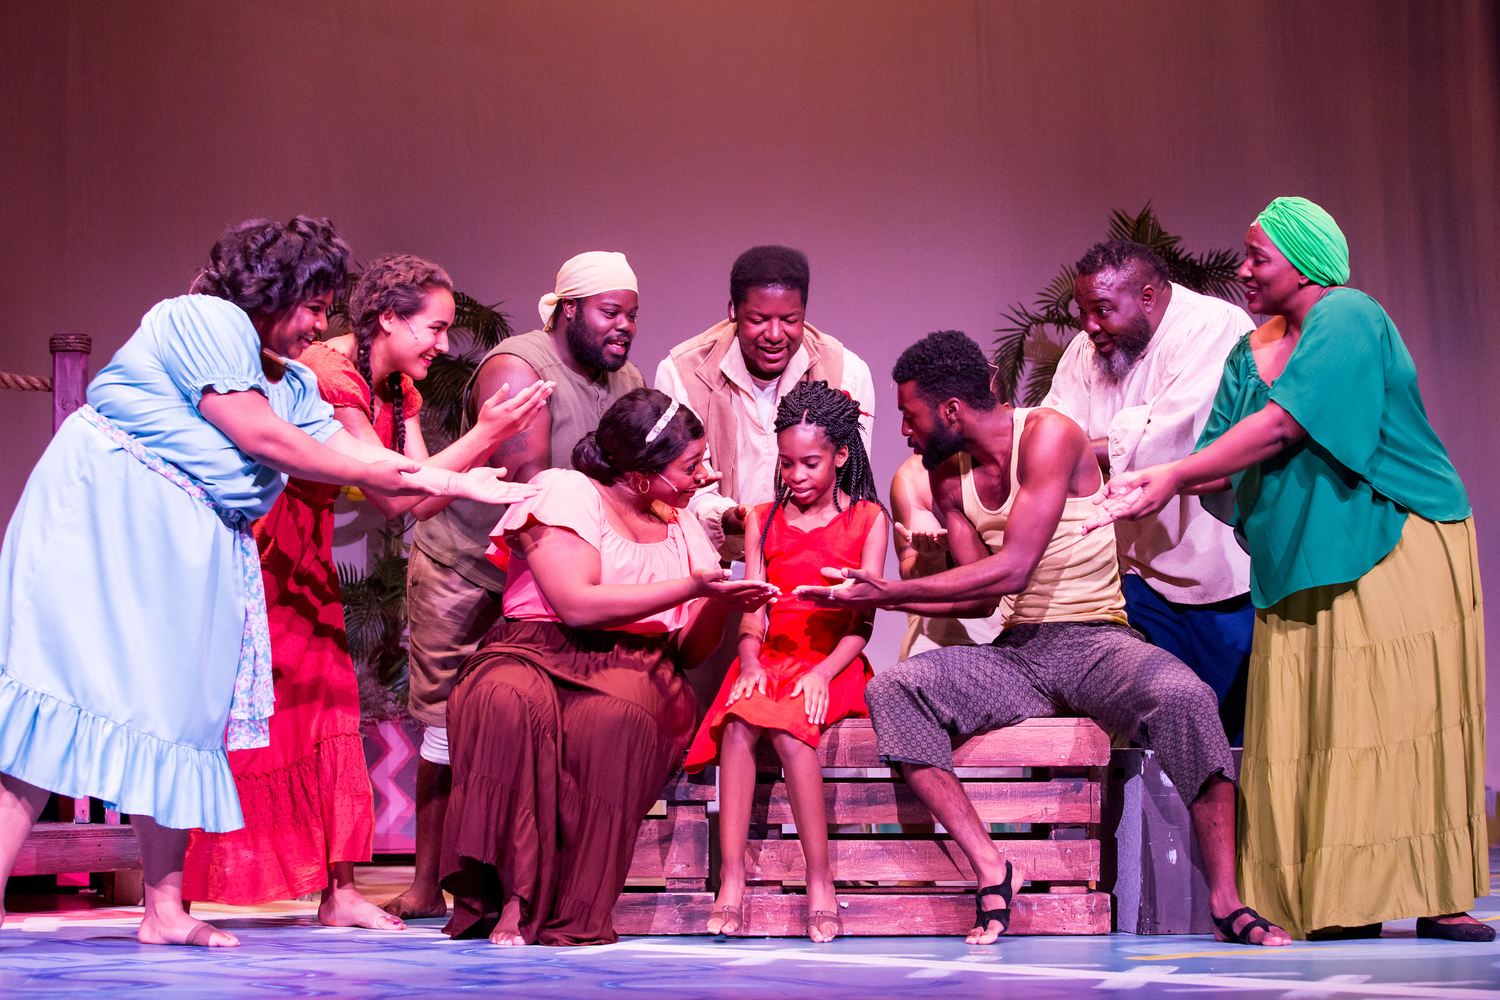 BWW Review: ONCE ON THIS ISLAND Makes a Splash at Warsaw Federal Incline Theater